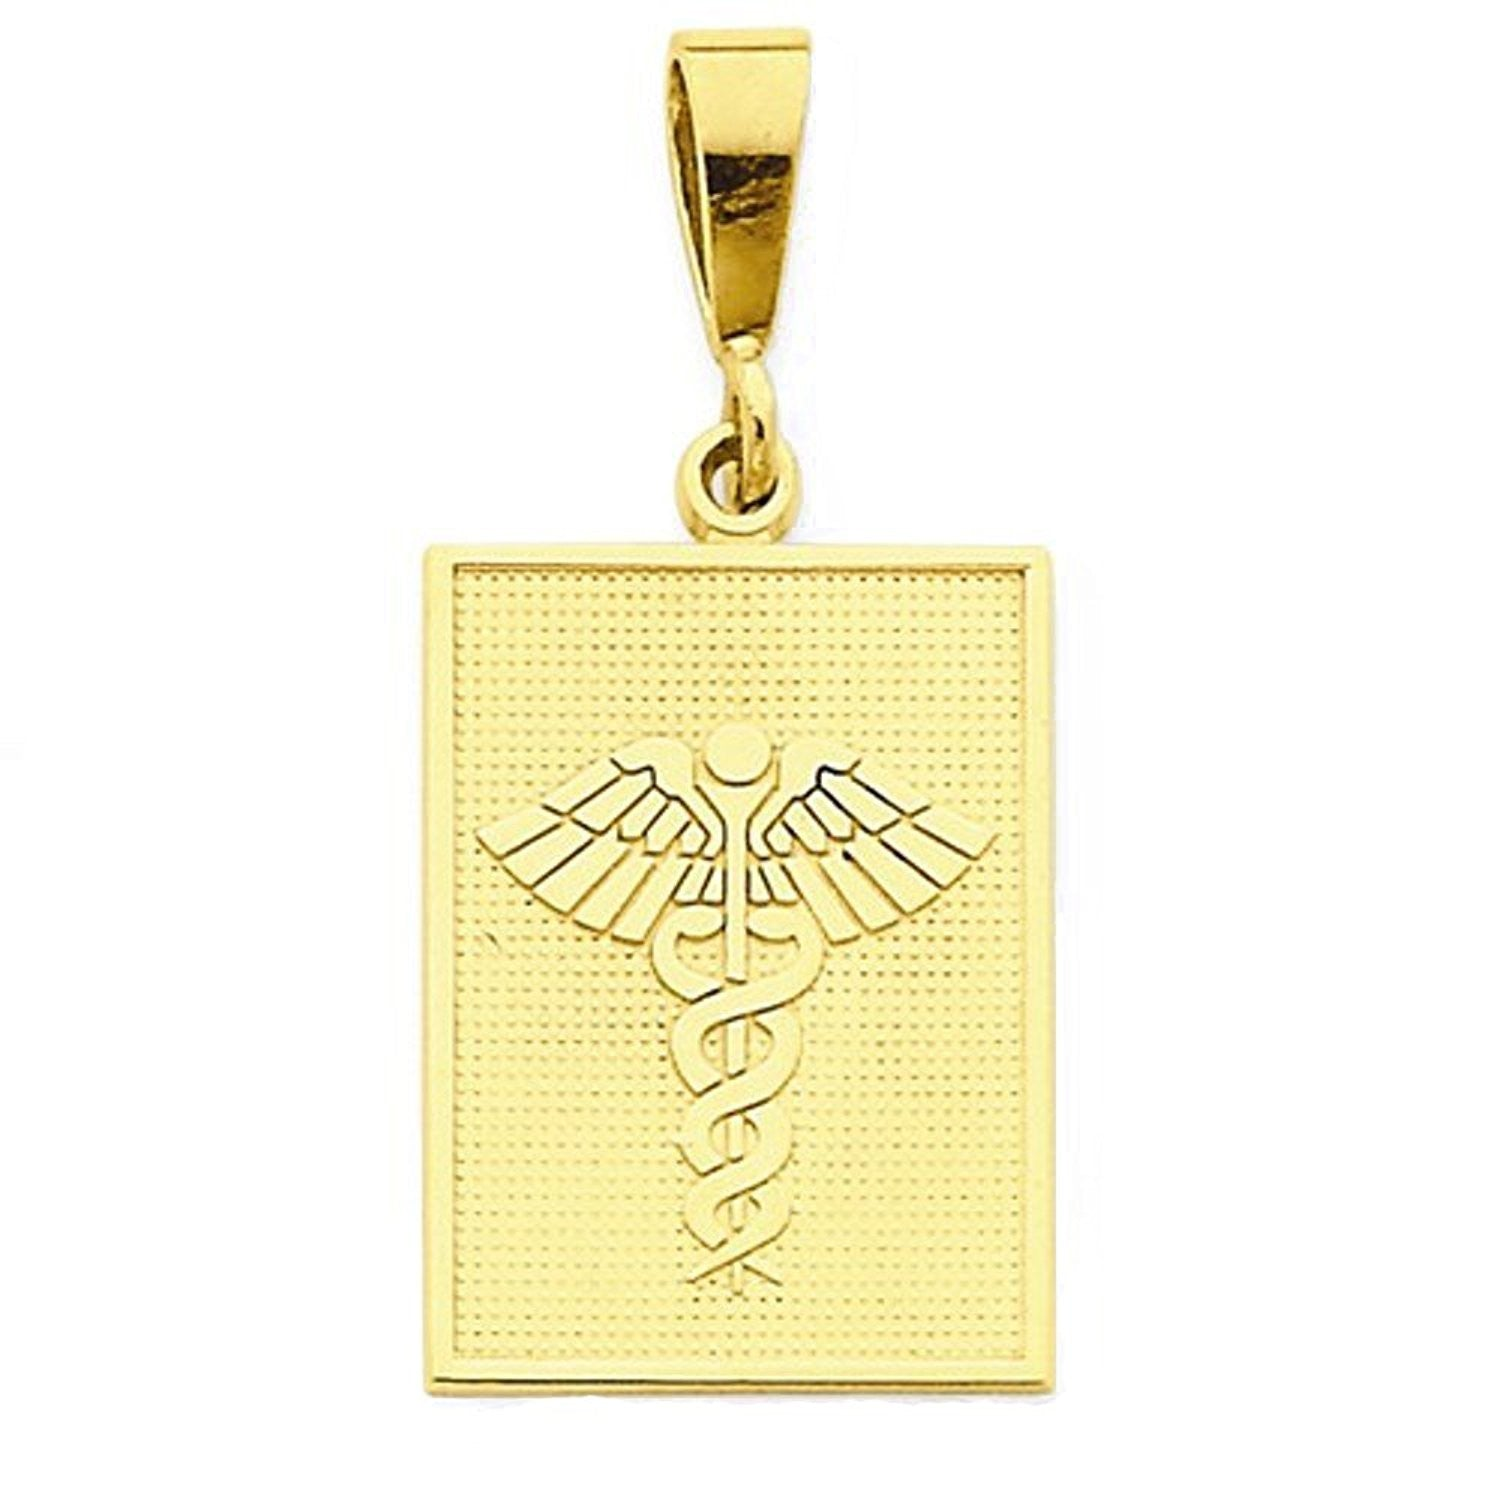 14k Yellow Gold Medical Caduceus Symbol Pendant Charm